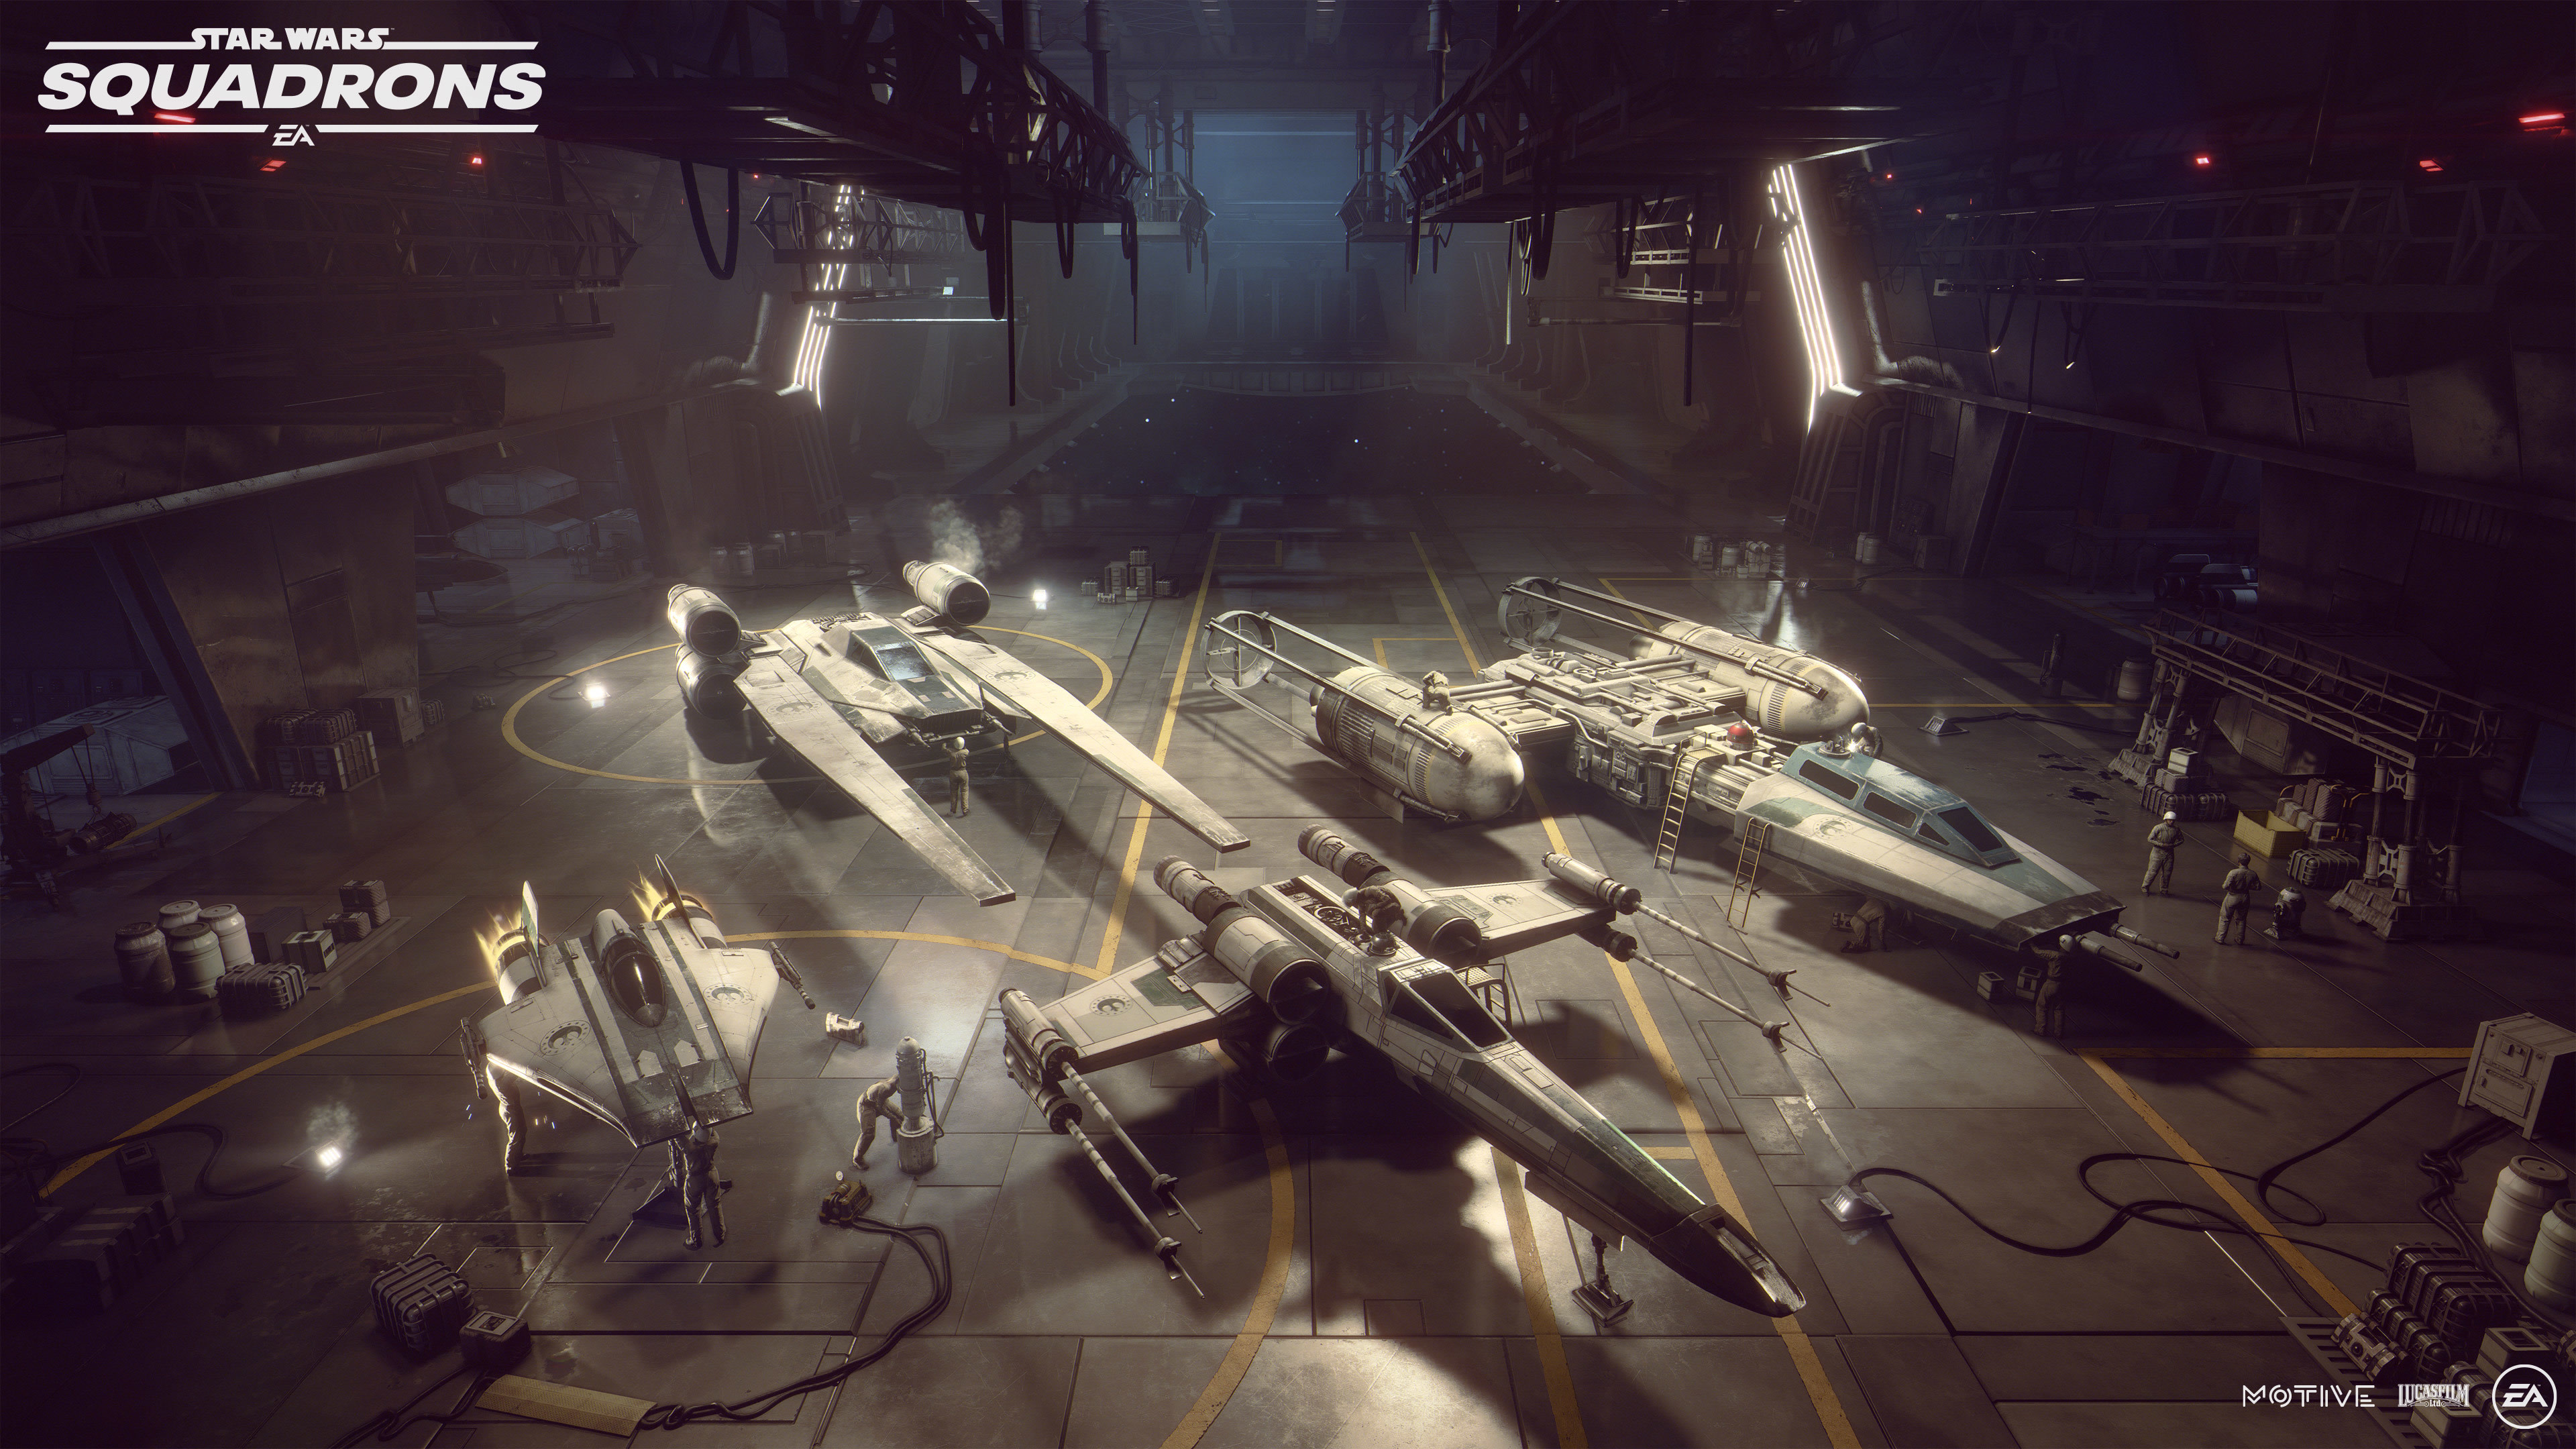 Star Wars Squadrons 4k Ultra Hd Wallpaper Background Image 3840x2160